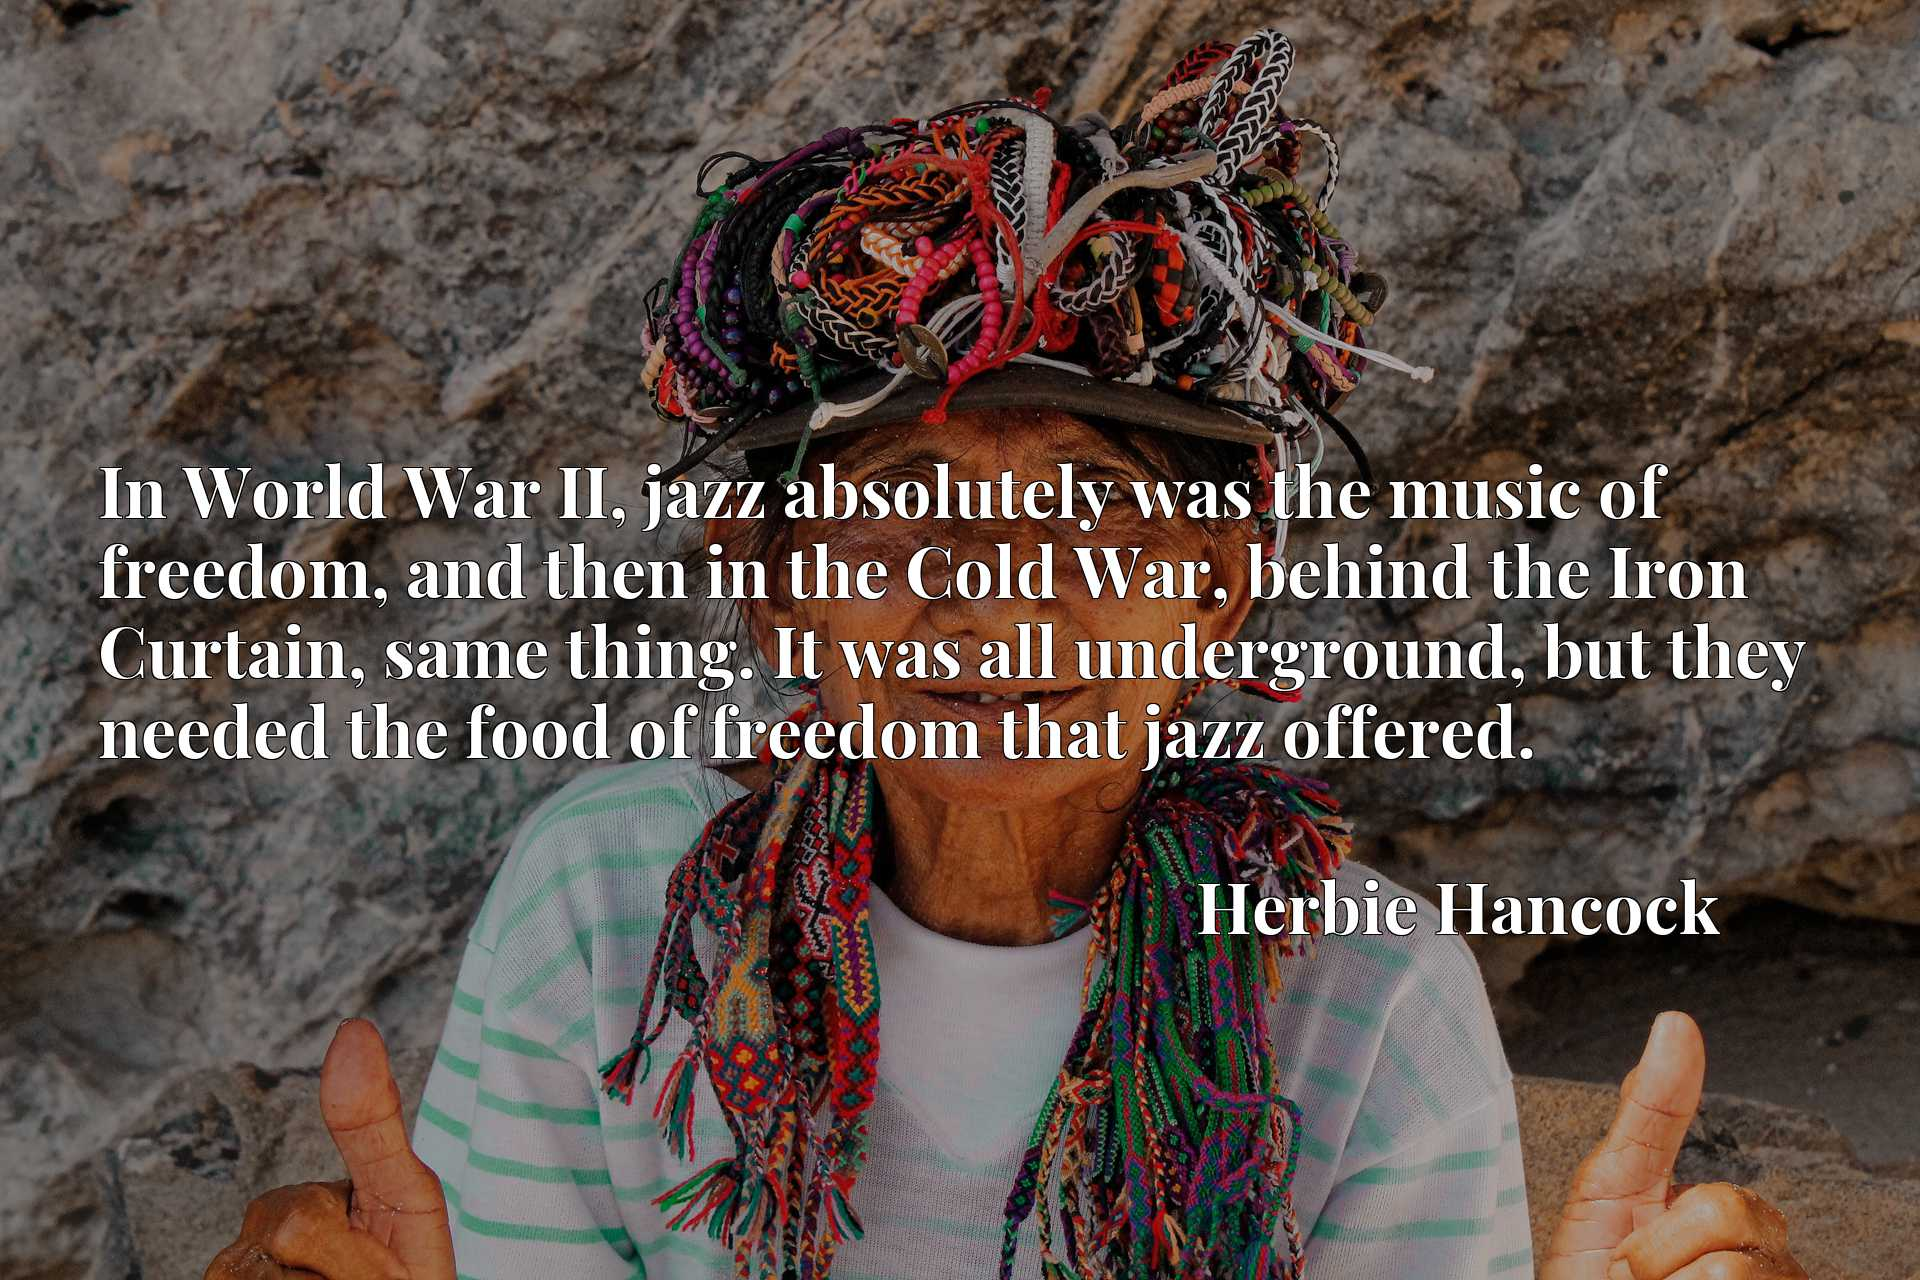 In World War II, jazz absolutely was the music of freedom, and then in the Cold War, behind the Iron Curtain, same thing. It was all underground, but they needed the food of freedom that jazz offered.